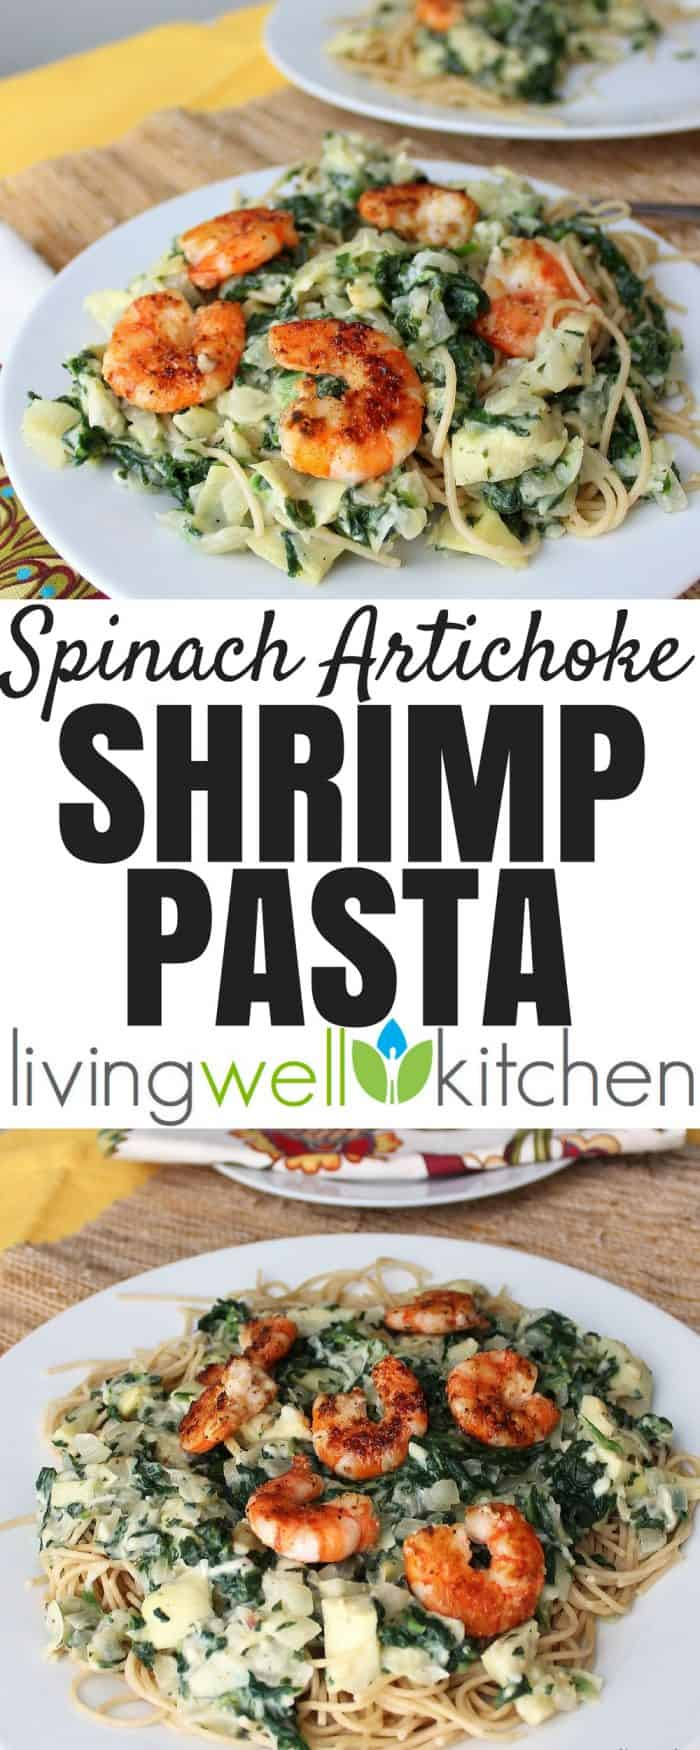 Spinach Artichoke Shrimp Pasta from Living Well Kitchen is a pasta dish covered in a rich and creamy spinach artichoke sauce, topped with shrimp that's deliciously satisfying. This recipe can easily be made gluten free.